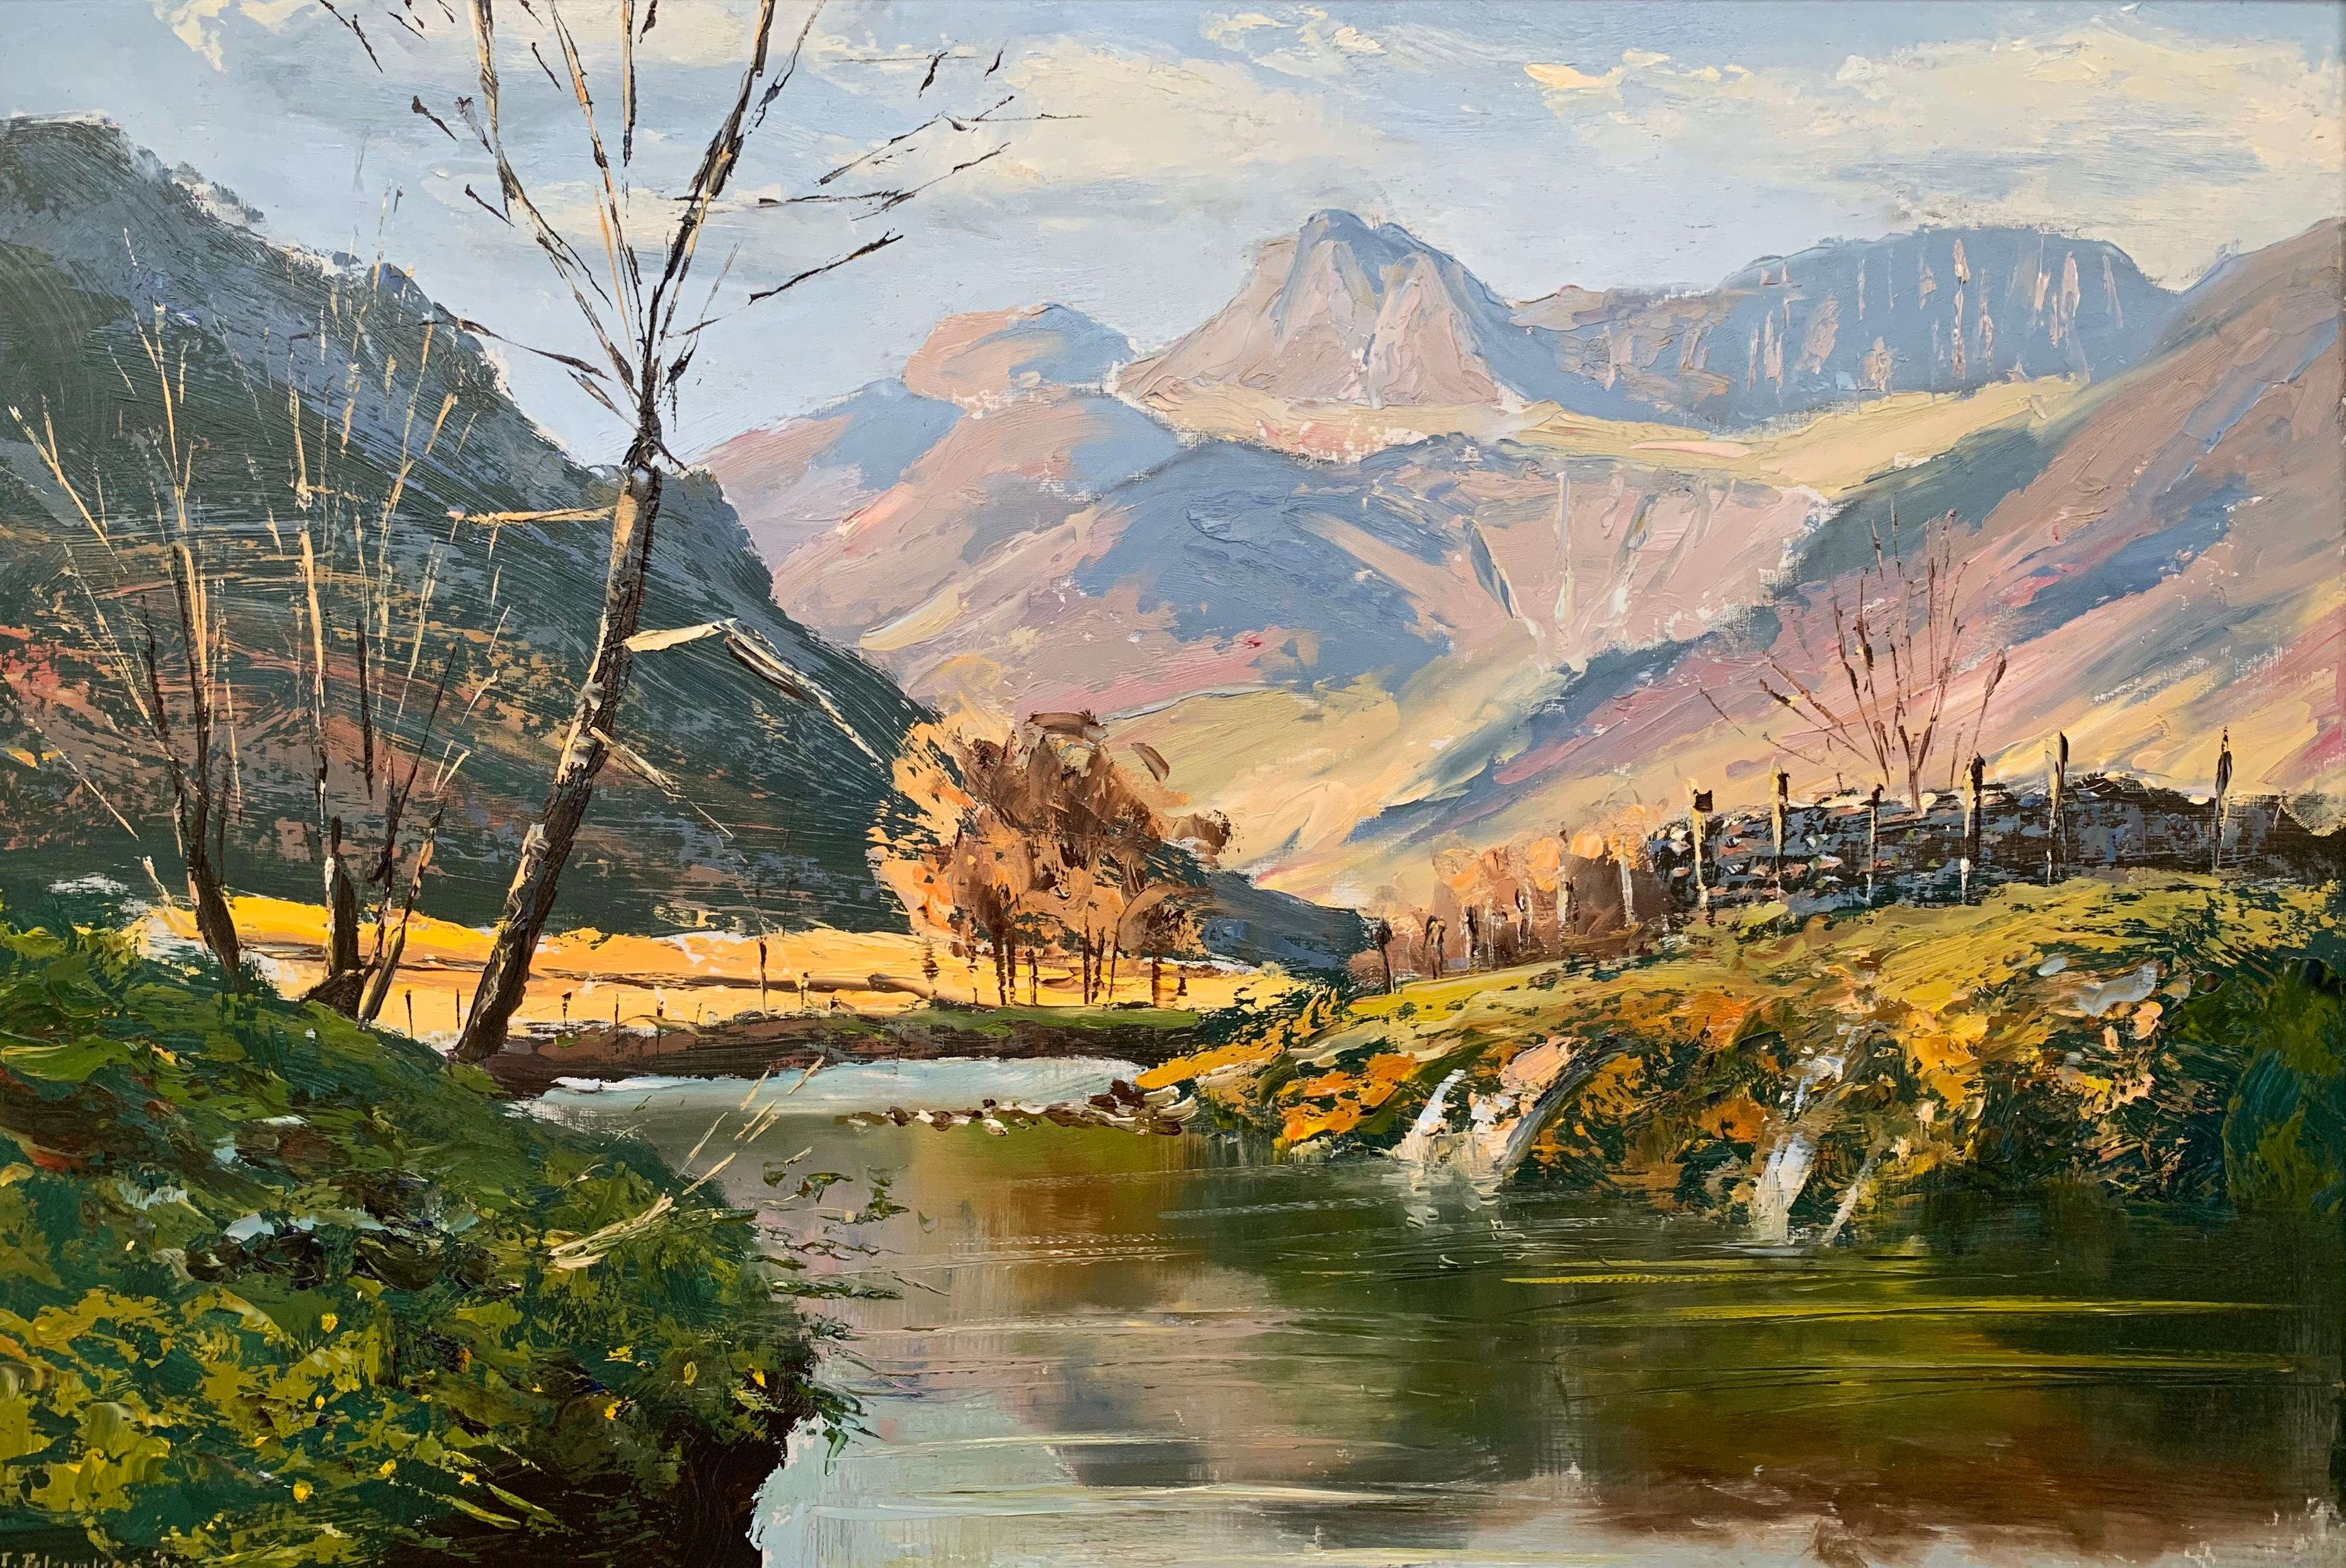 Oil Painting of the Langdale Pikes in English Lake District by British Artist